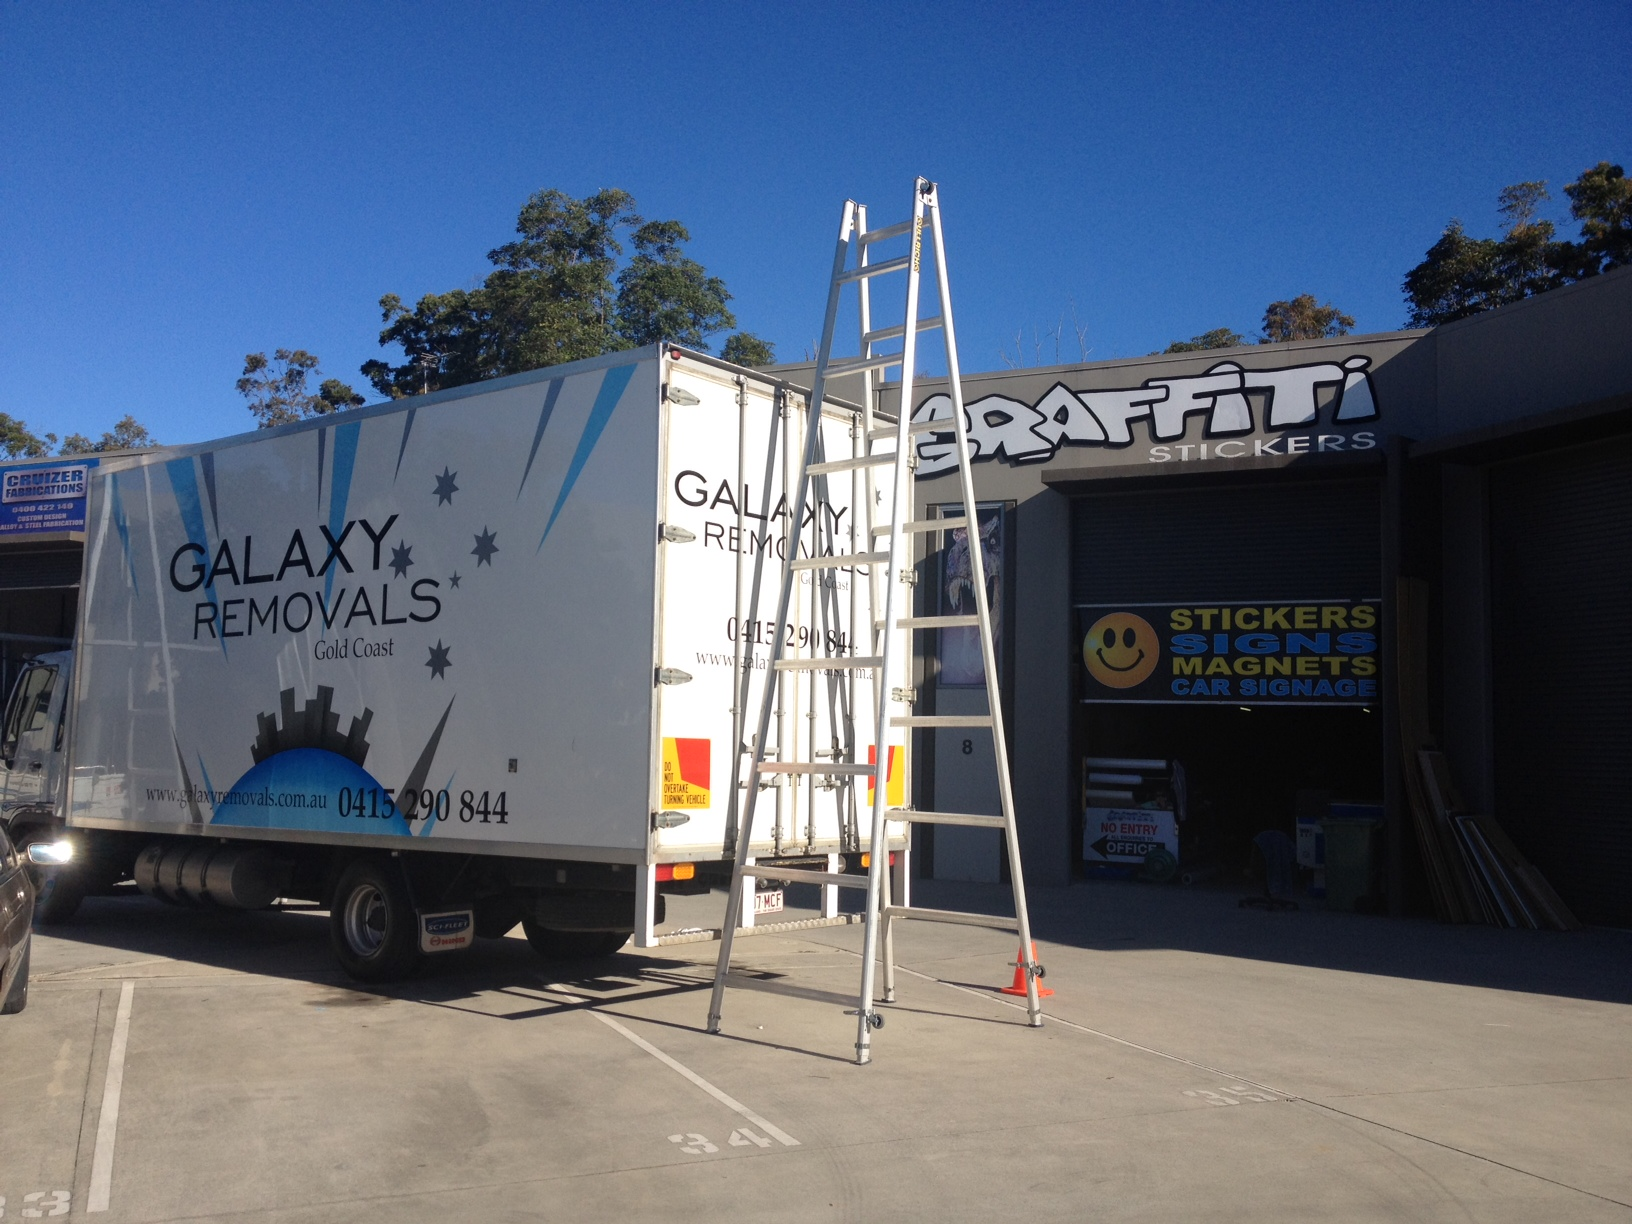 galazy removals photo 3.JPG